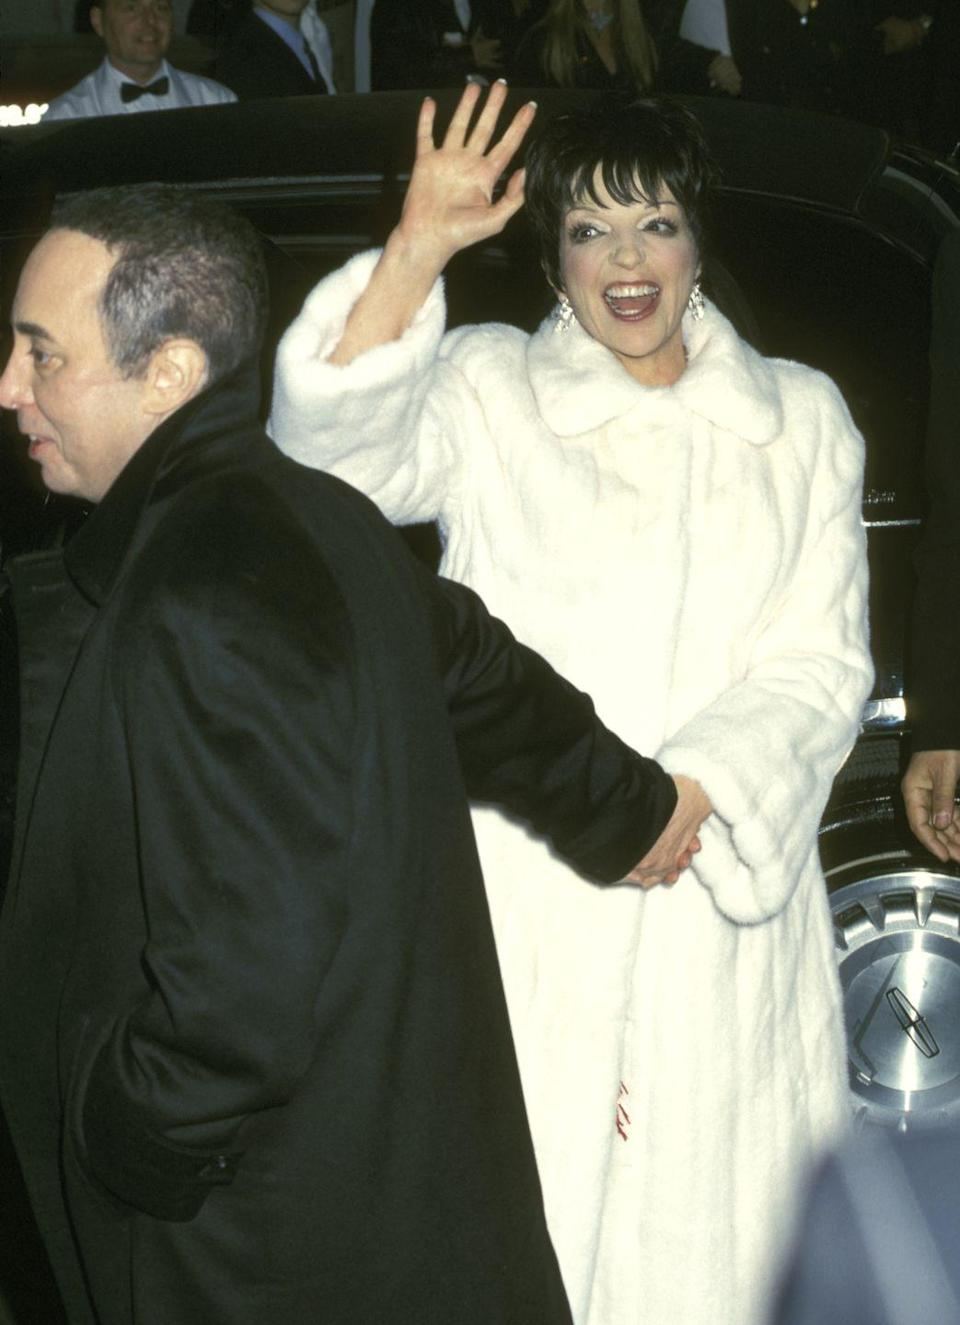 <p>When Liza Minnelli married former producer David Gest at the Marble Collegiate Church in New York City on March 16, she threw a $4.5 million celebration for an alleged 1,000 guests. The marriage with her fourth and last husband lasted until April 2007.</p>